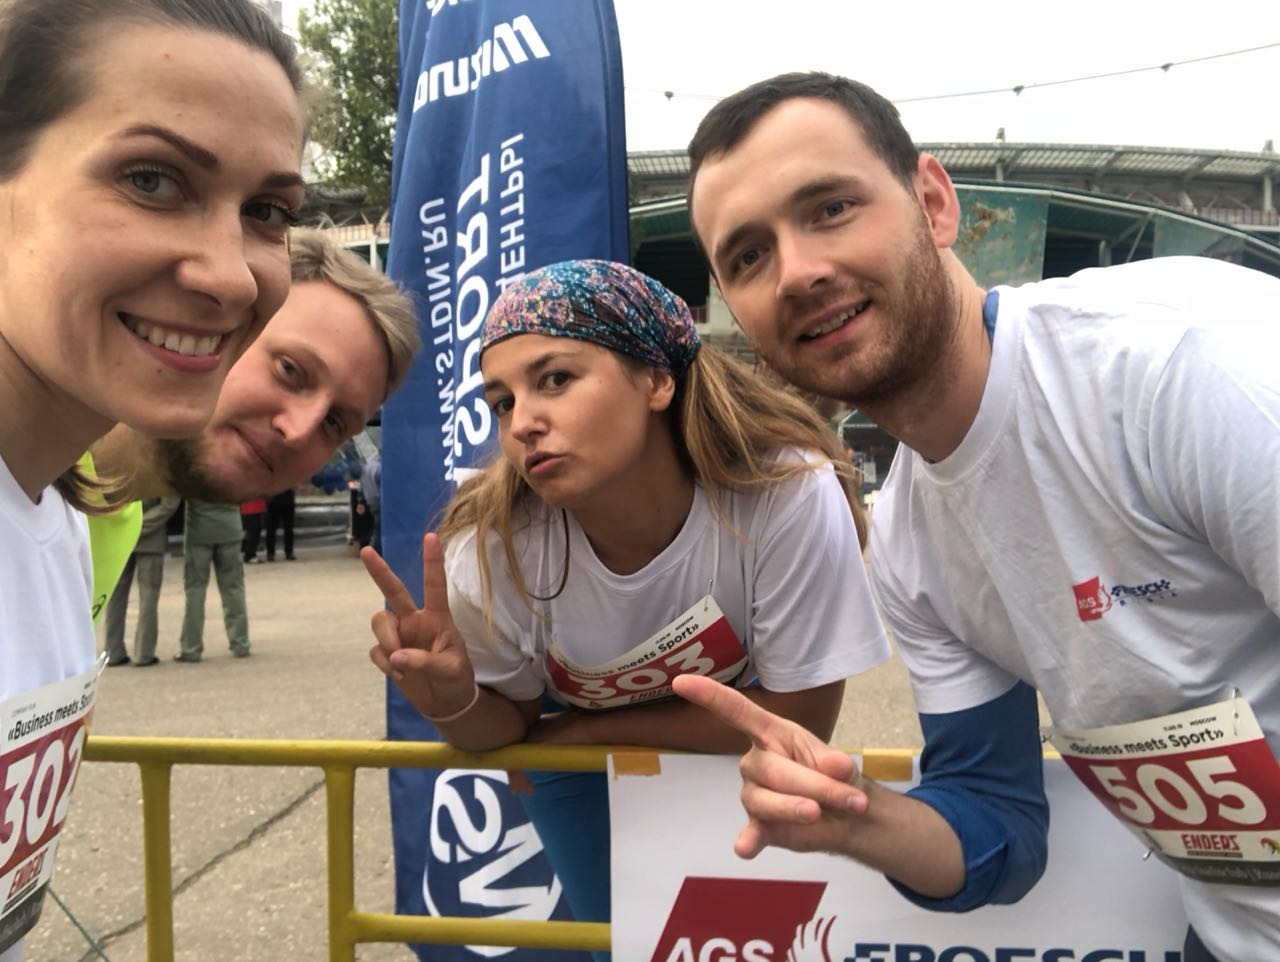 AGS Russia team members at the Wirtschaftsclub Run.